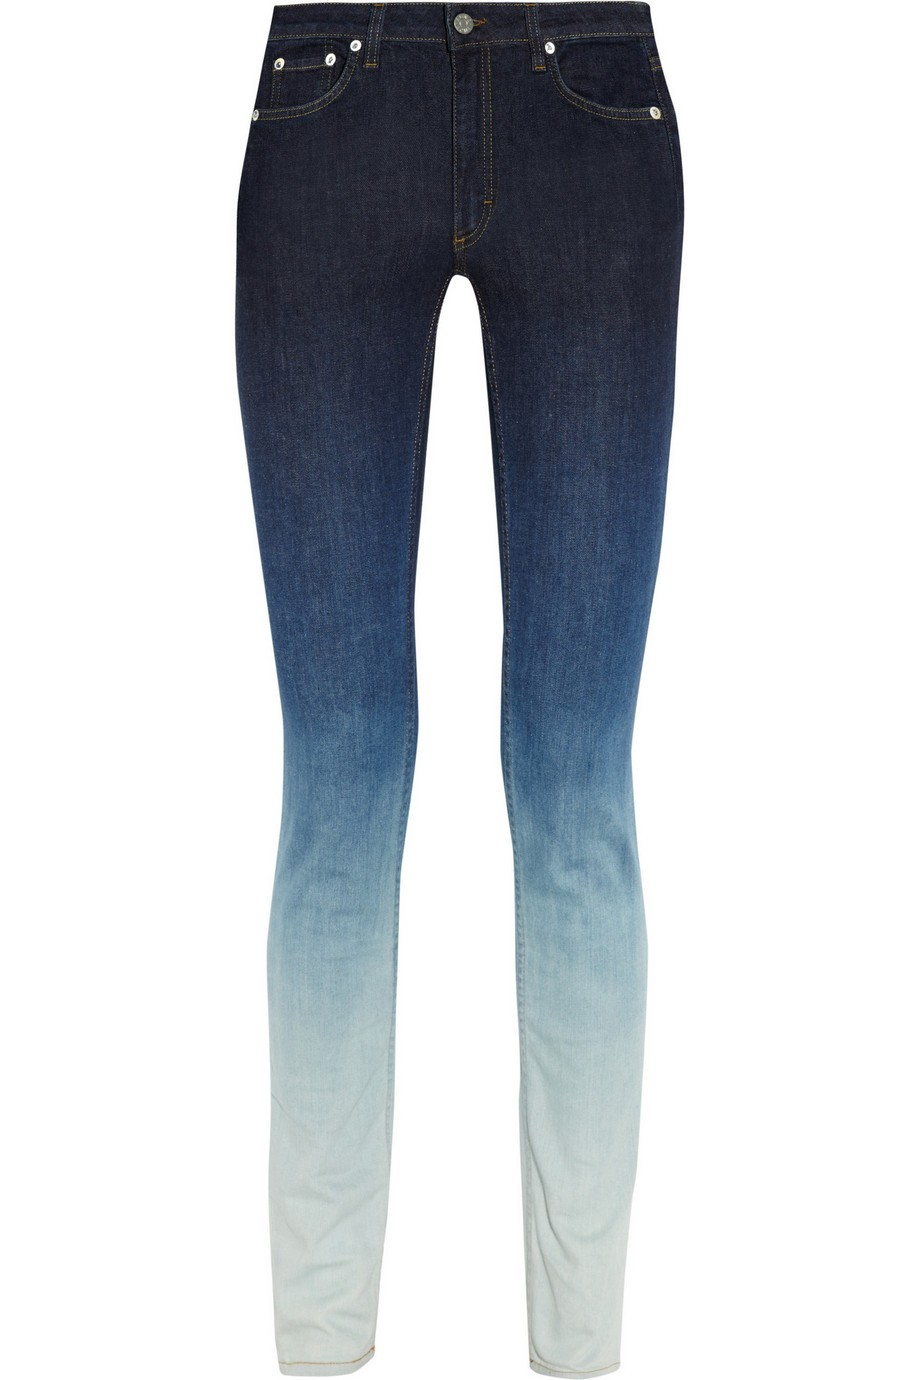 Ombré mid-rise skinny jeans